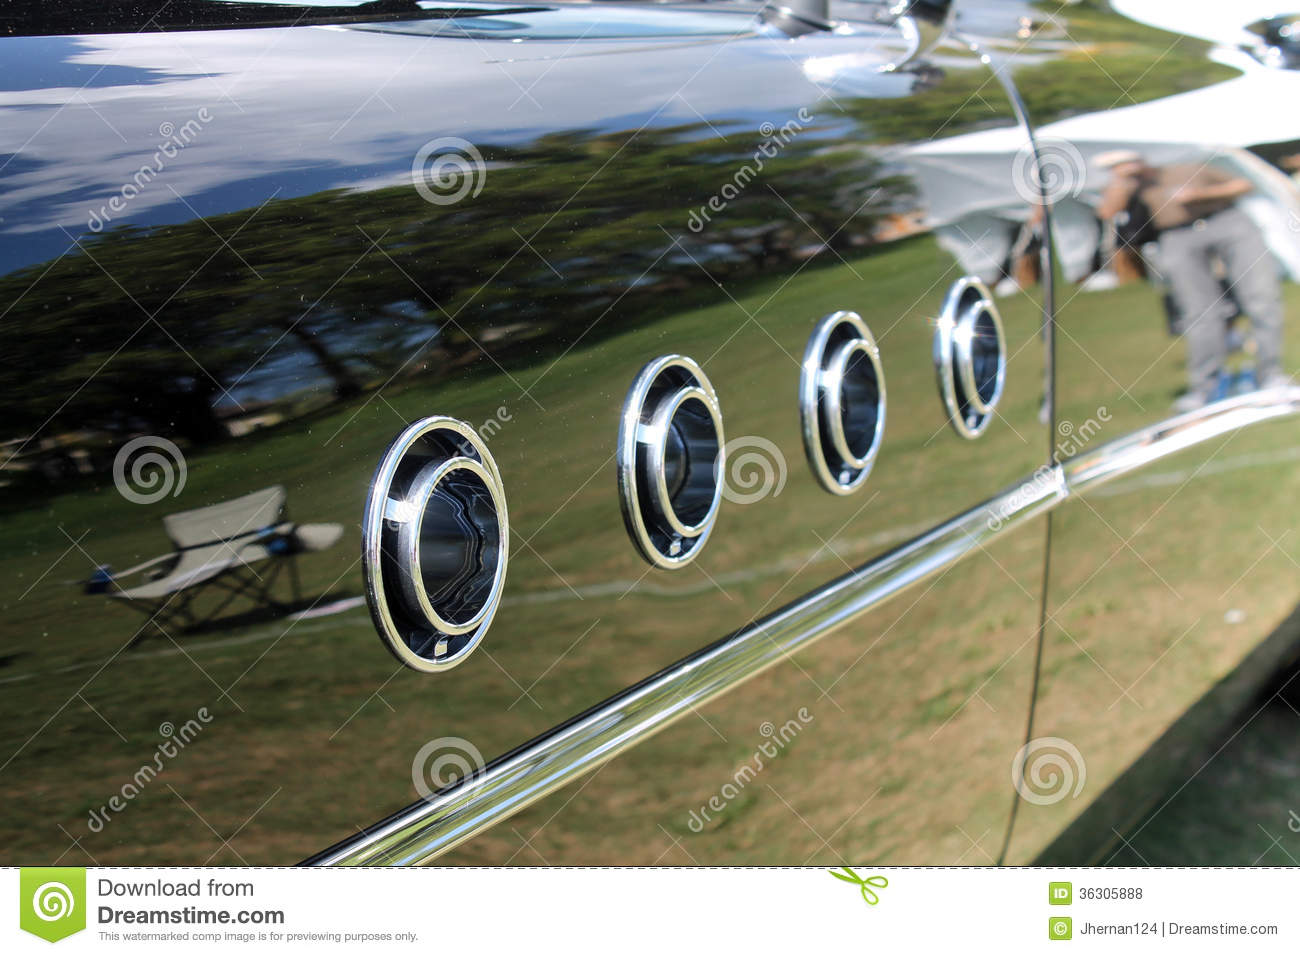 classic american car fender detail royalty free stock photos image 36305888. Black Bedroom Furniture Sets. Home Design Ideas